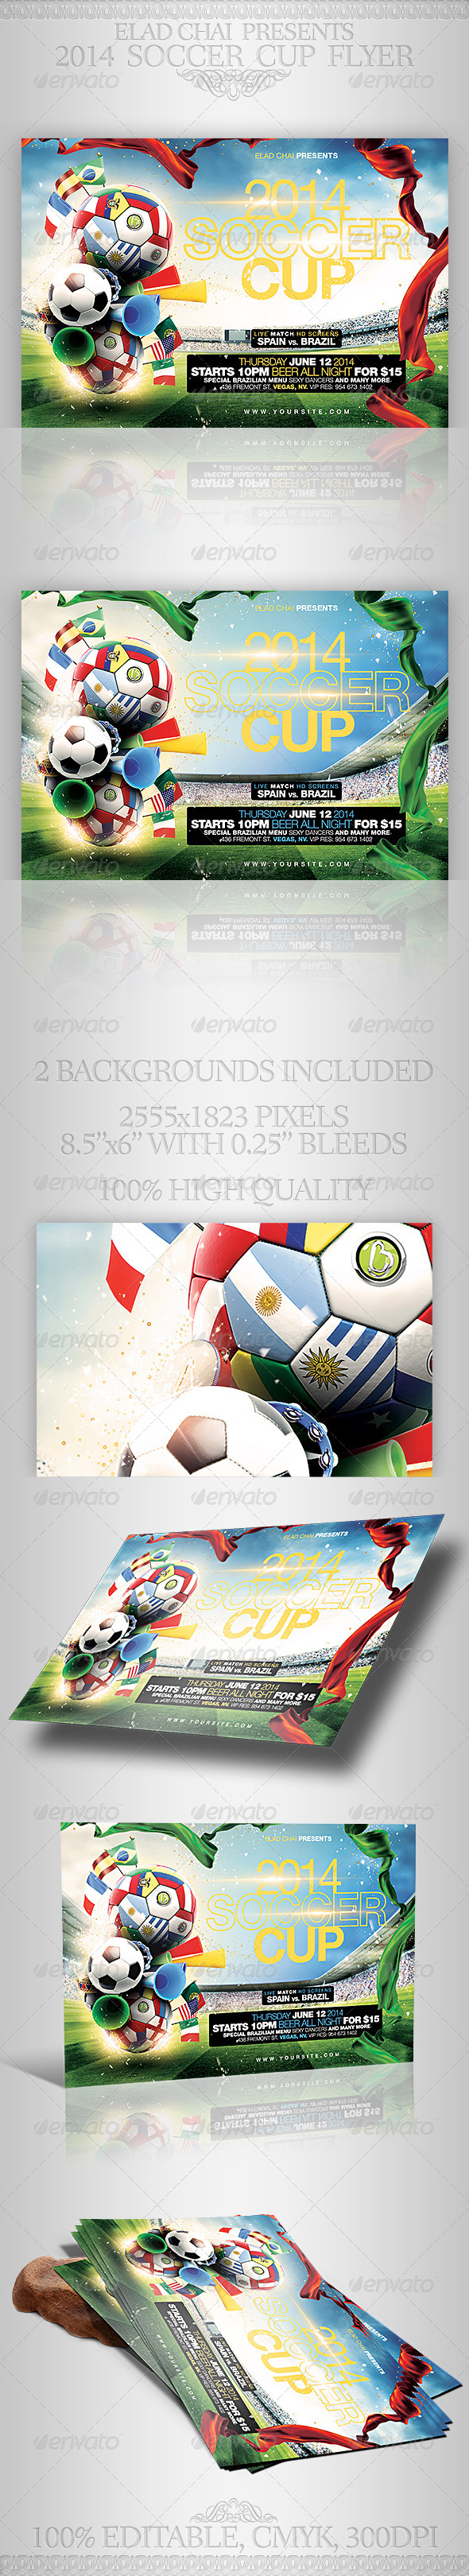 2014 Soccer Football Cup Flyer Template